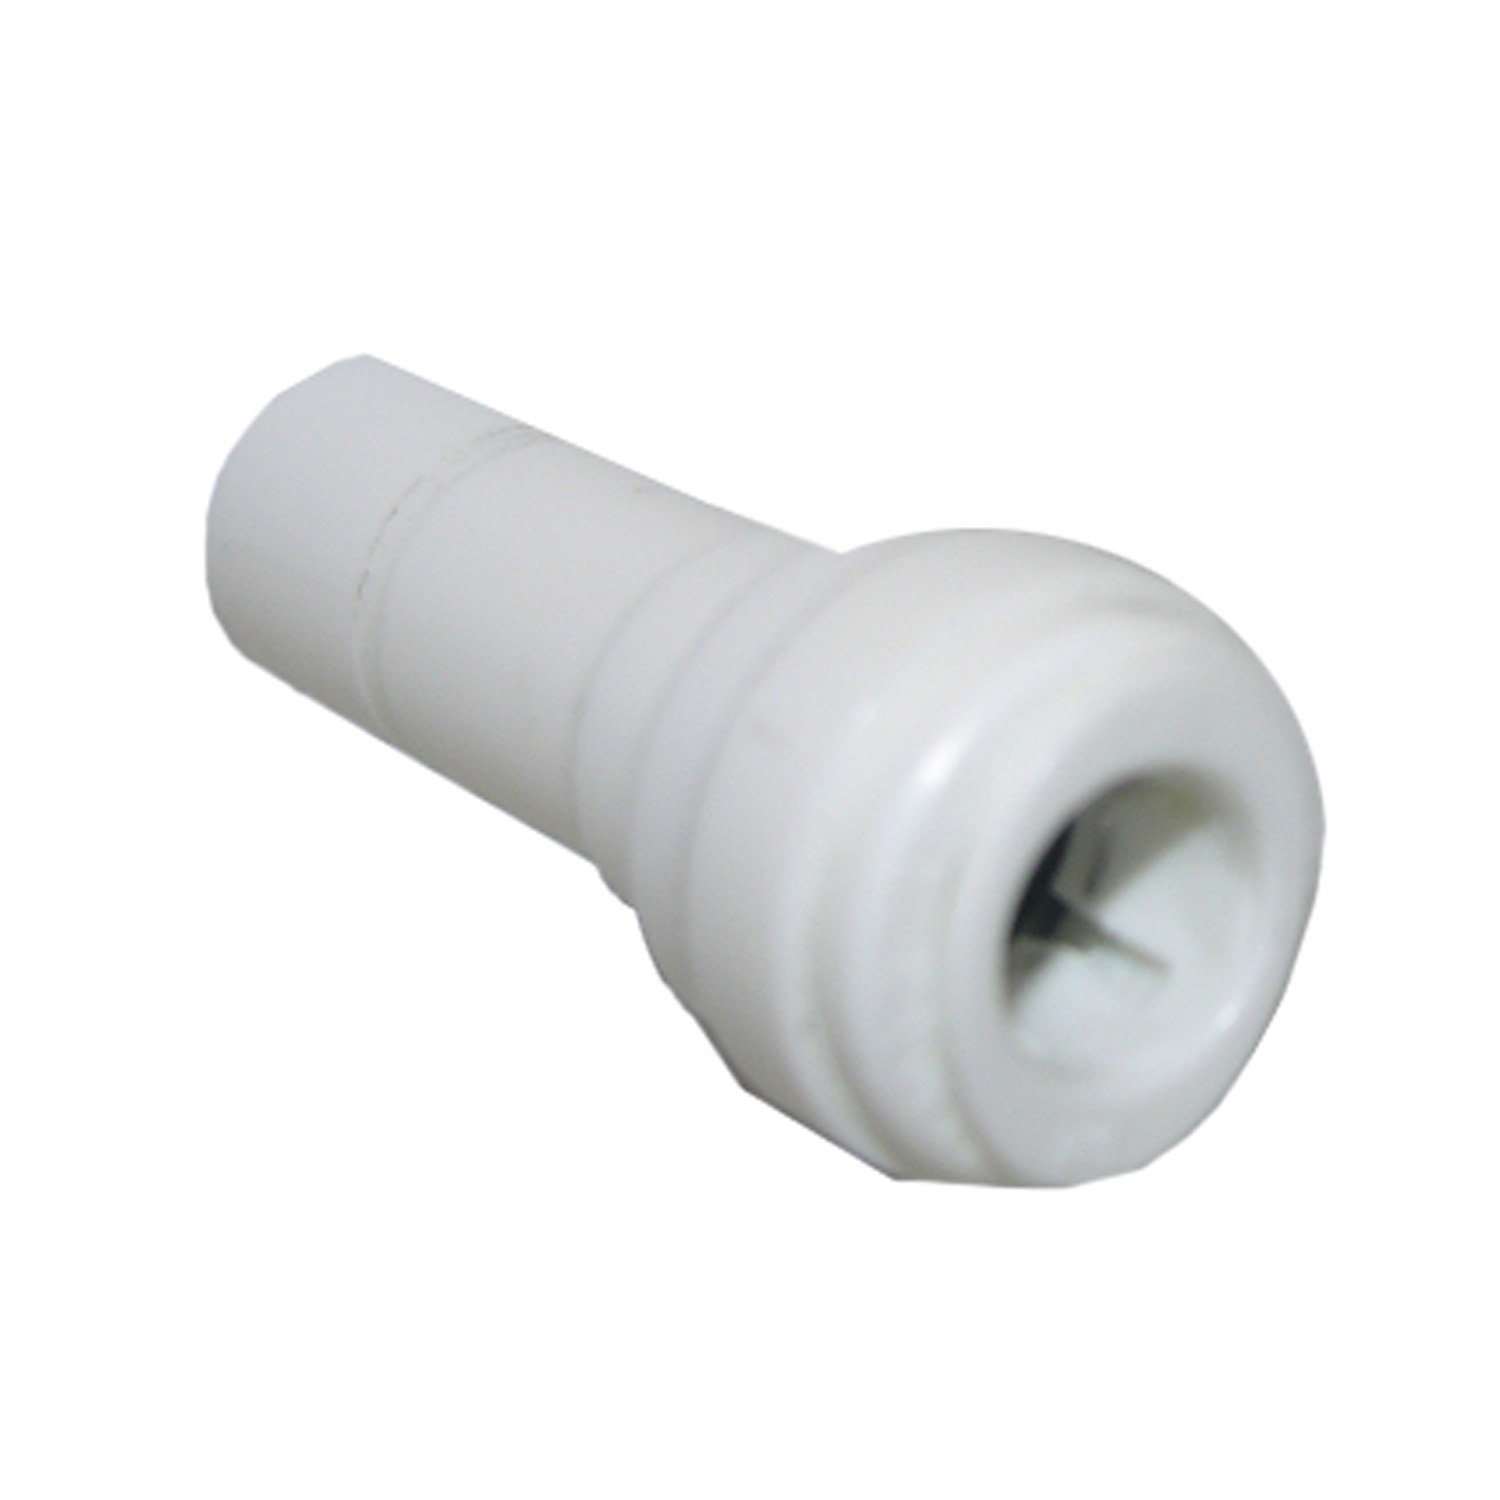 Plastic LASCO 19-6257 Reducer Push-In Fitting with 3//8-Inch Stem and 1//4-Inch Tube